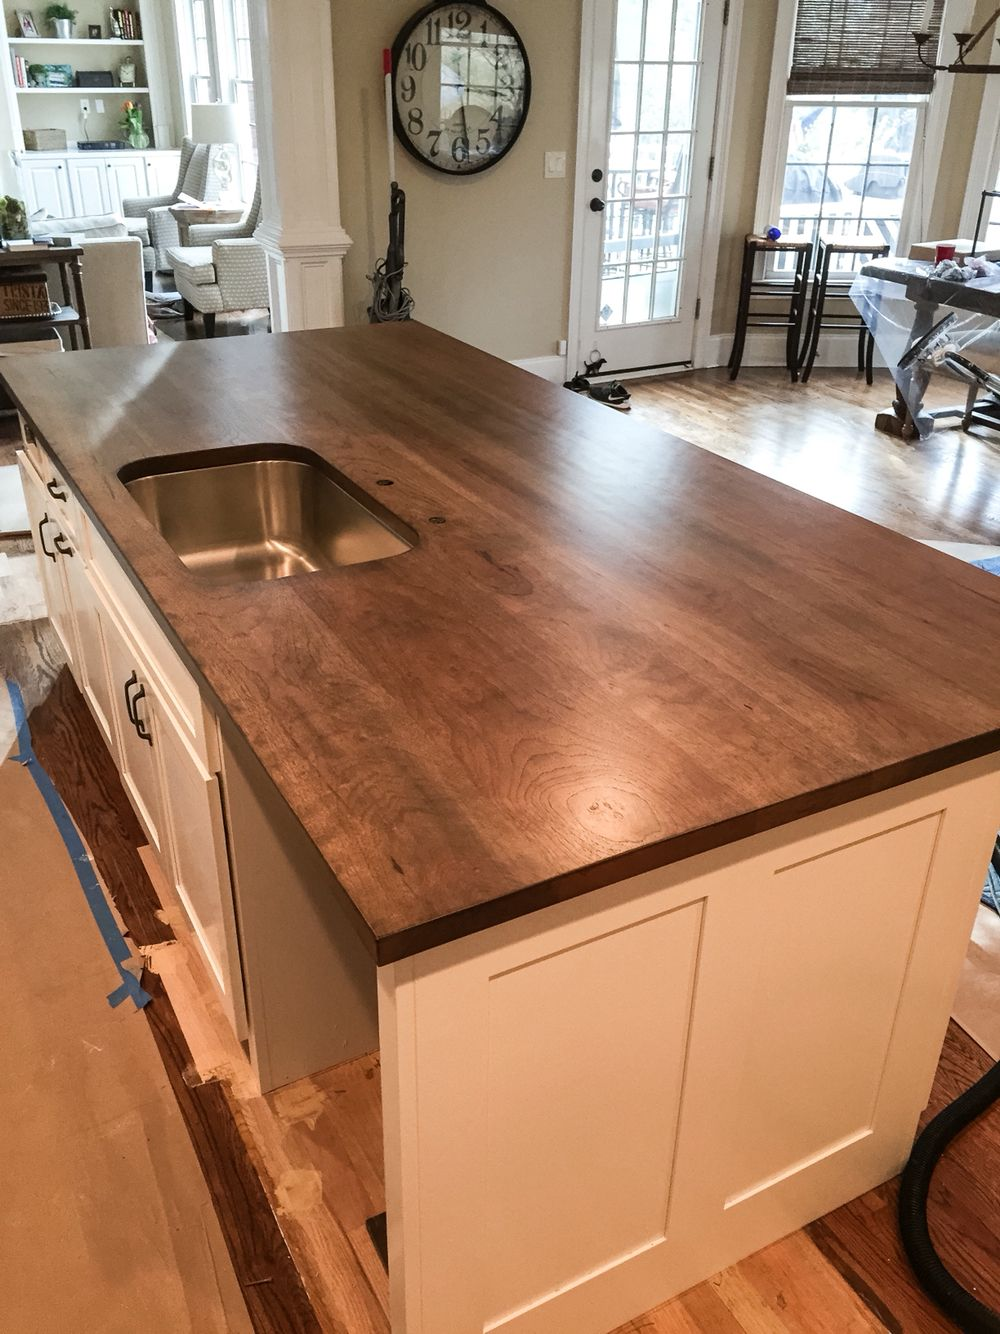 Pecan Island Counter Top Wood From Cag Lumber Built By Marty Weck